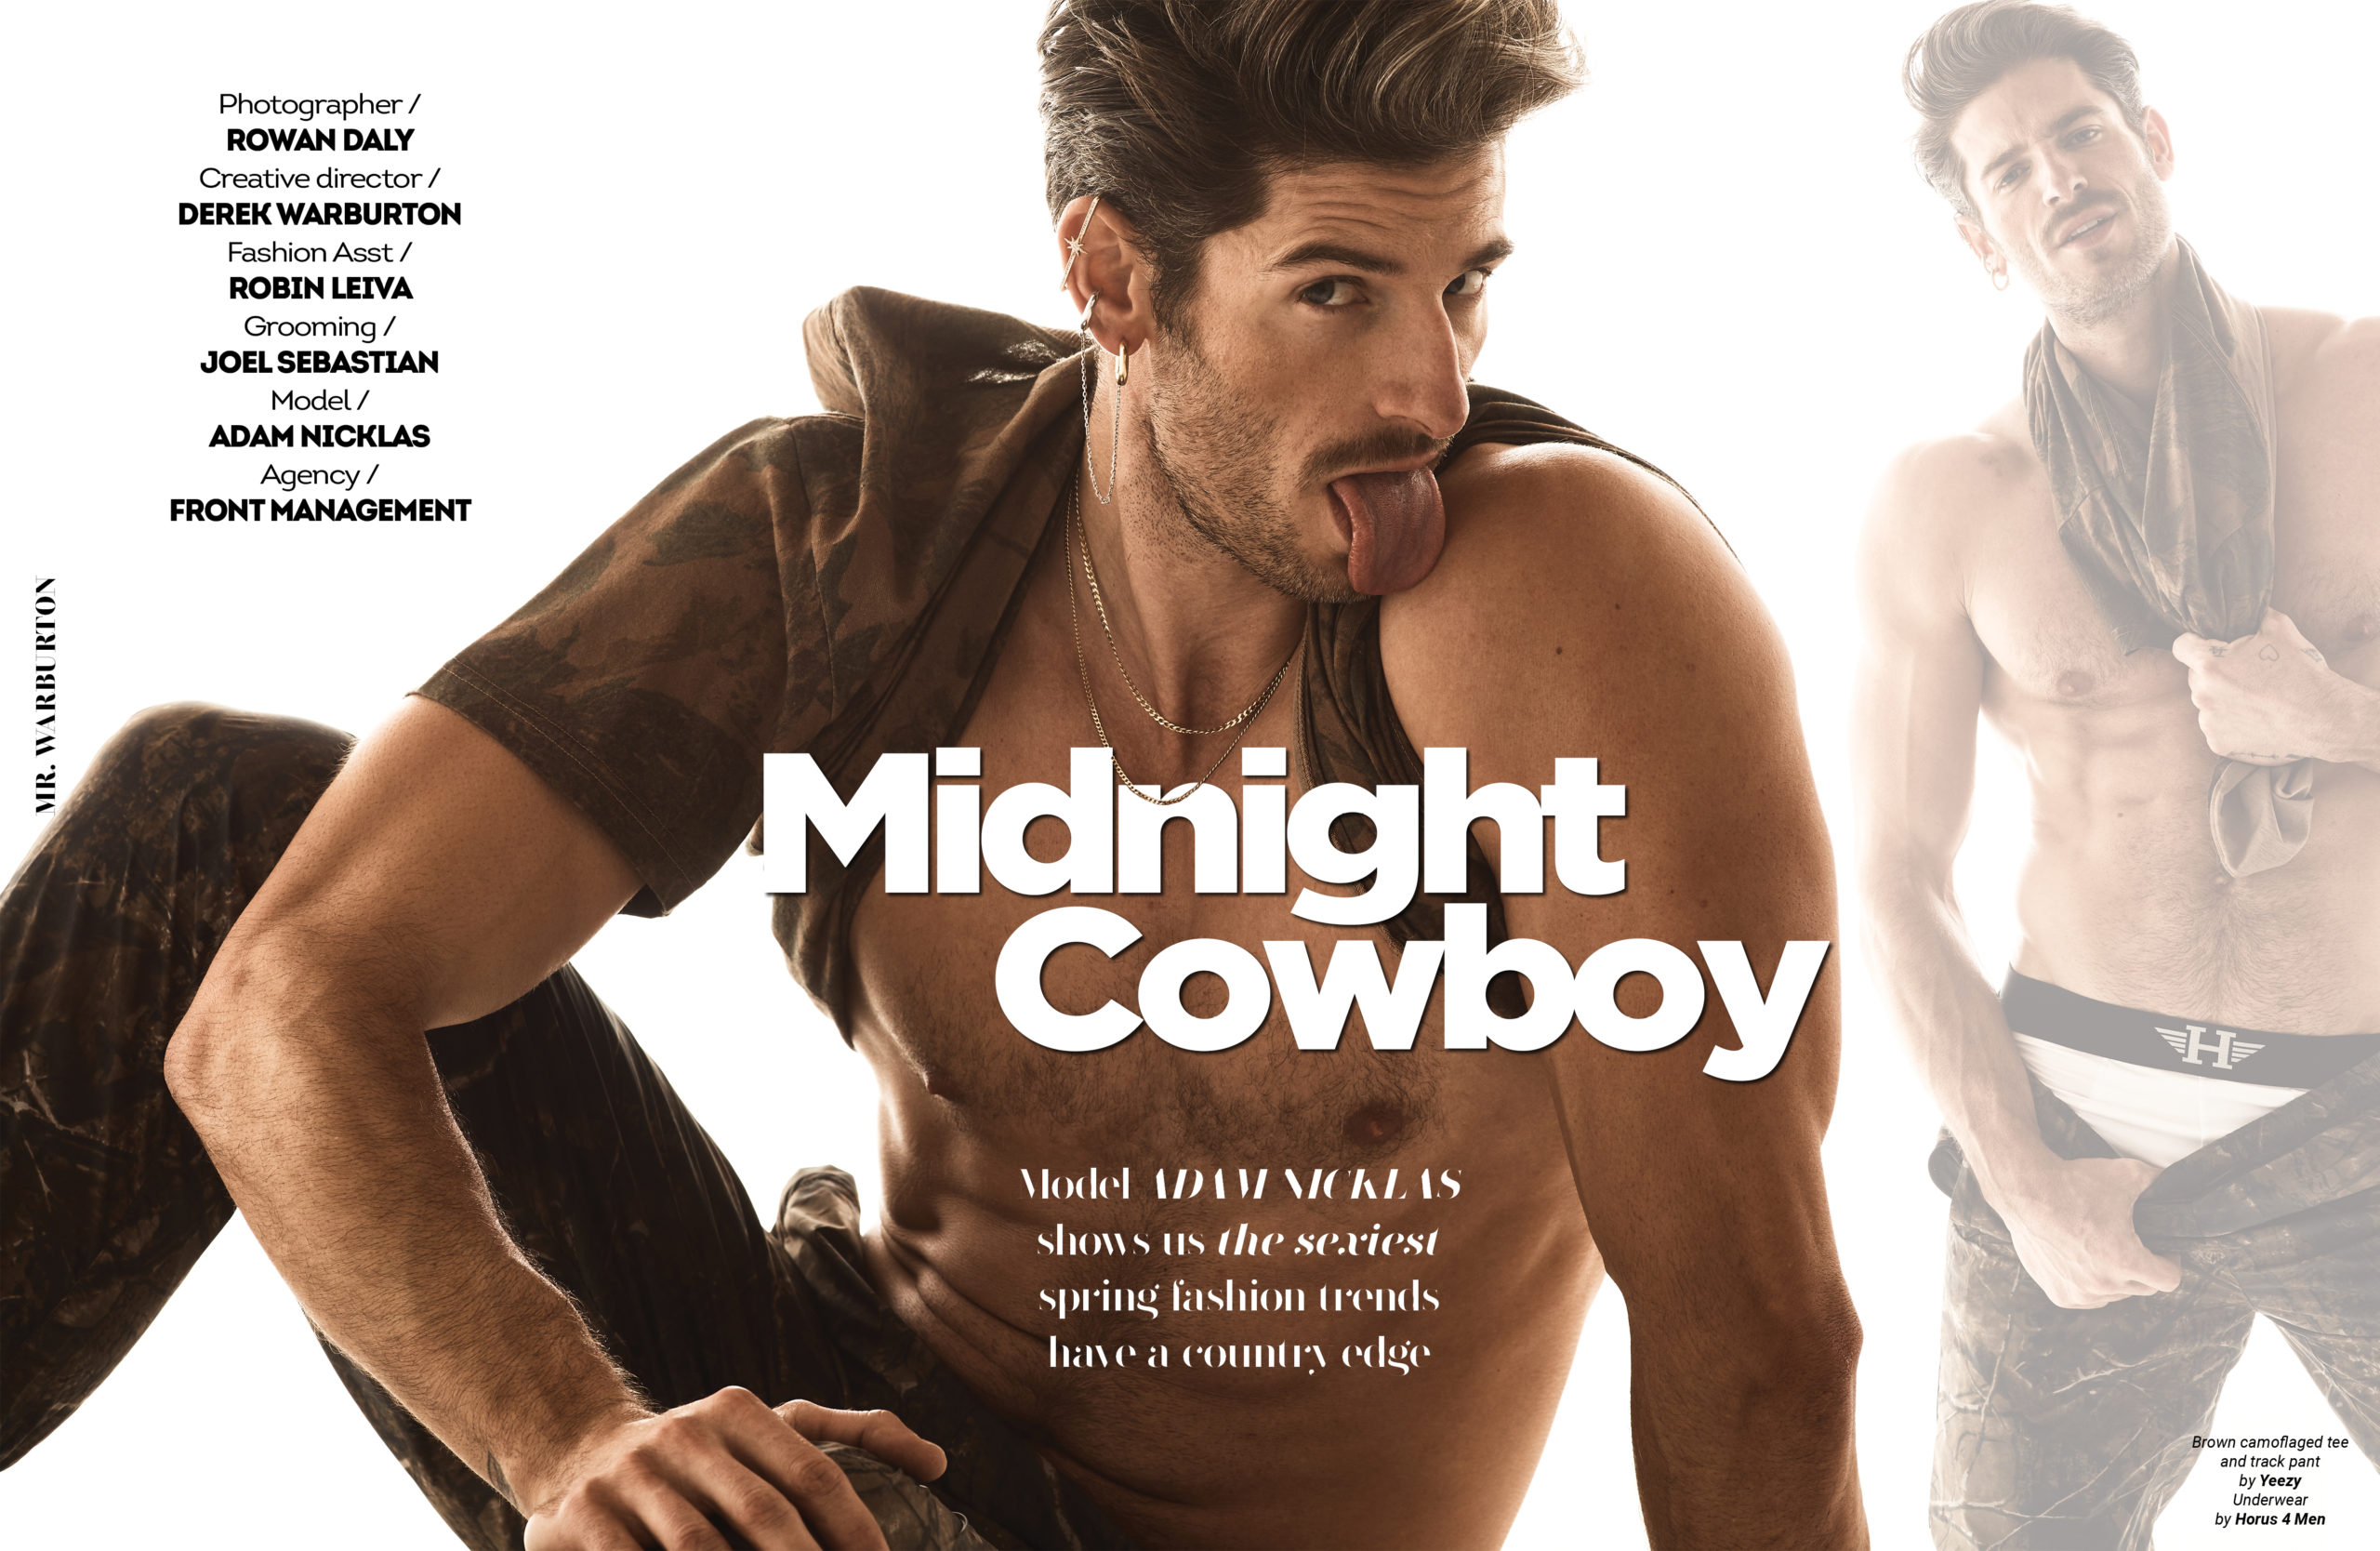 Mr. Warburton Magazine Midnight Cowboy